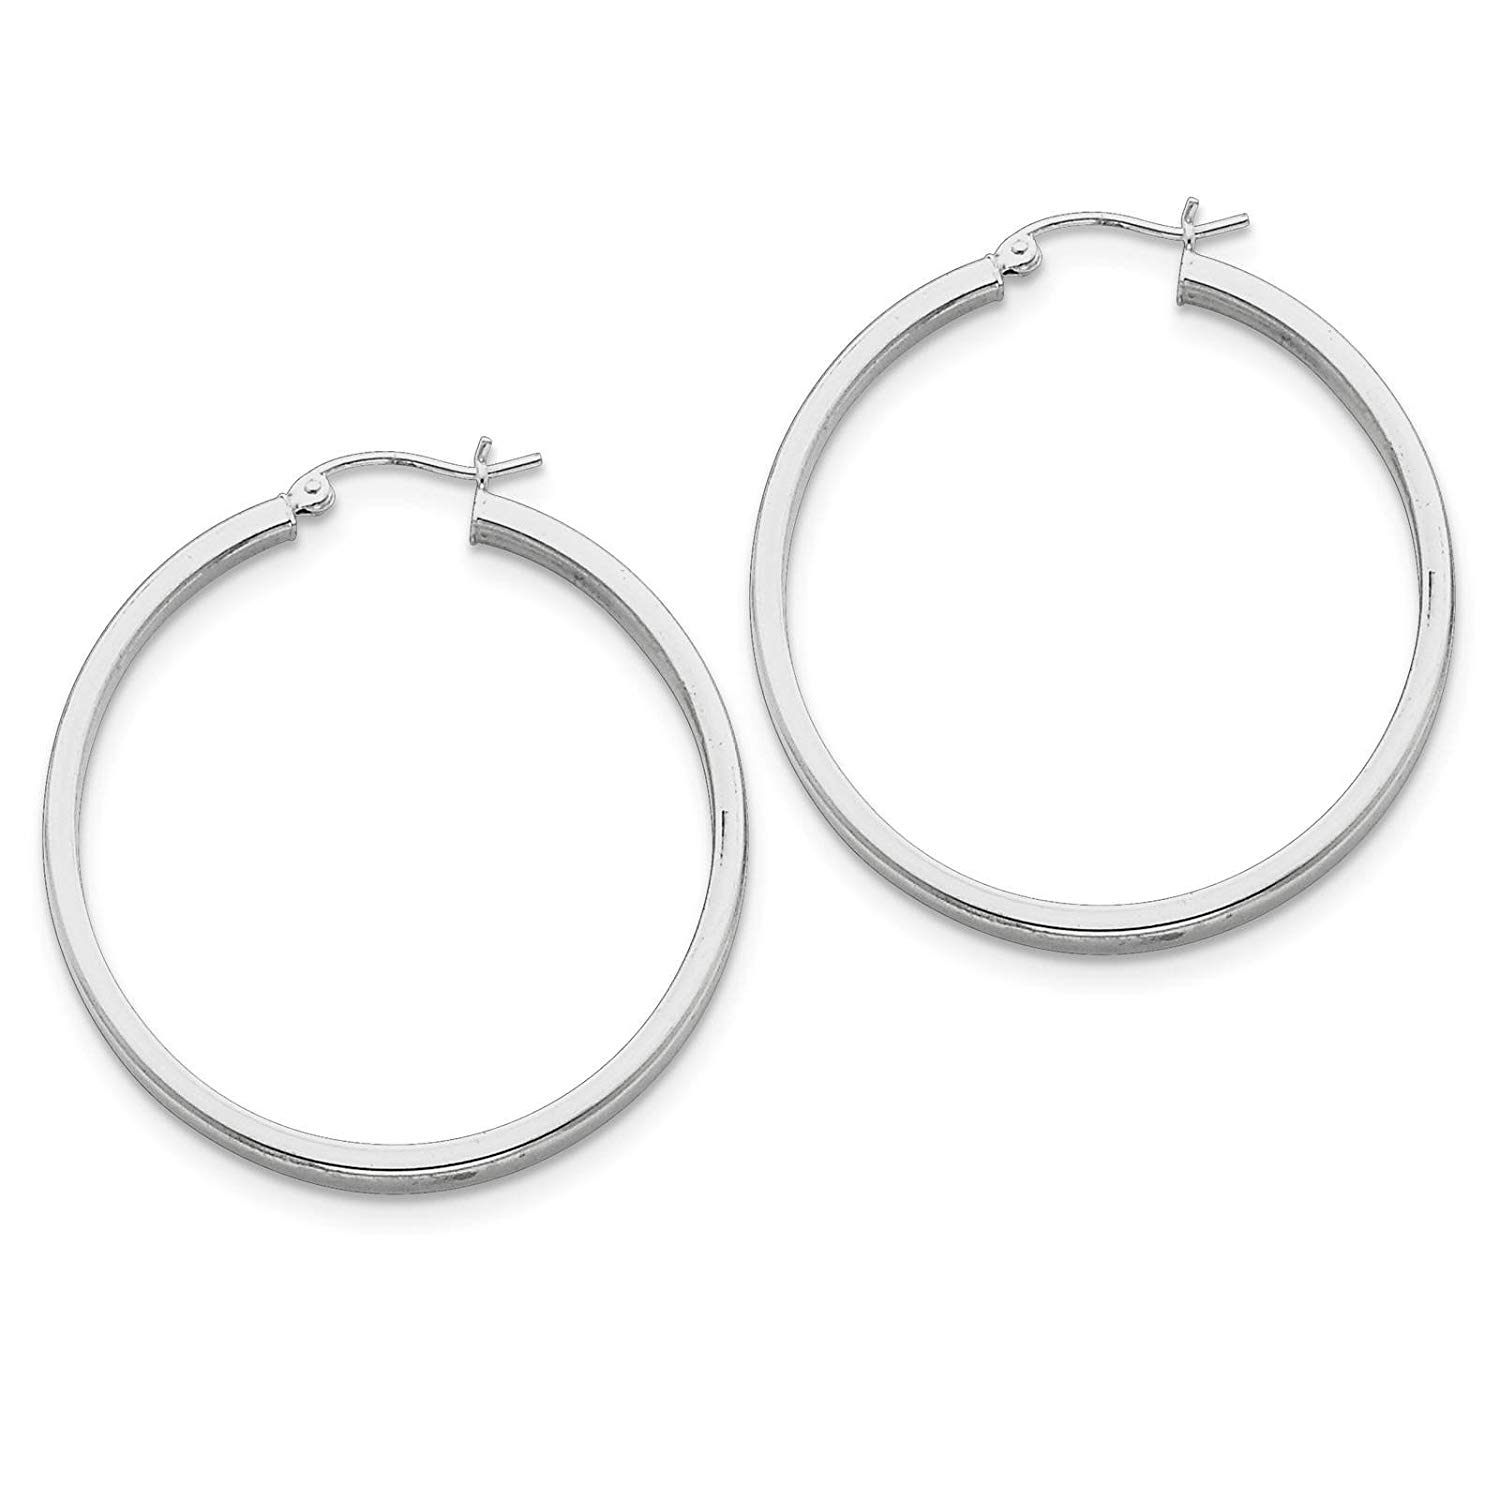 .925 Sterling Silver Rhodium-plated Polished Square-tube Hoop Earrings 3mm x 40mm